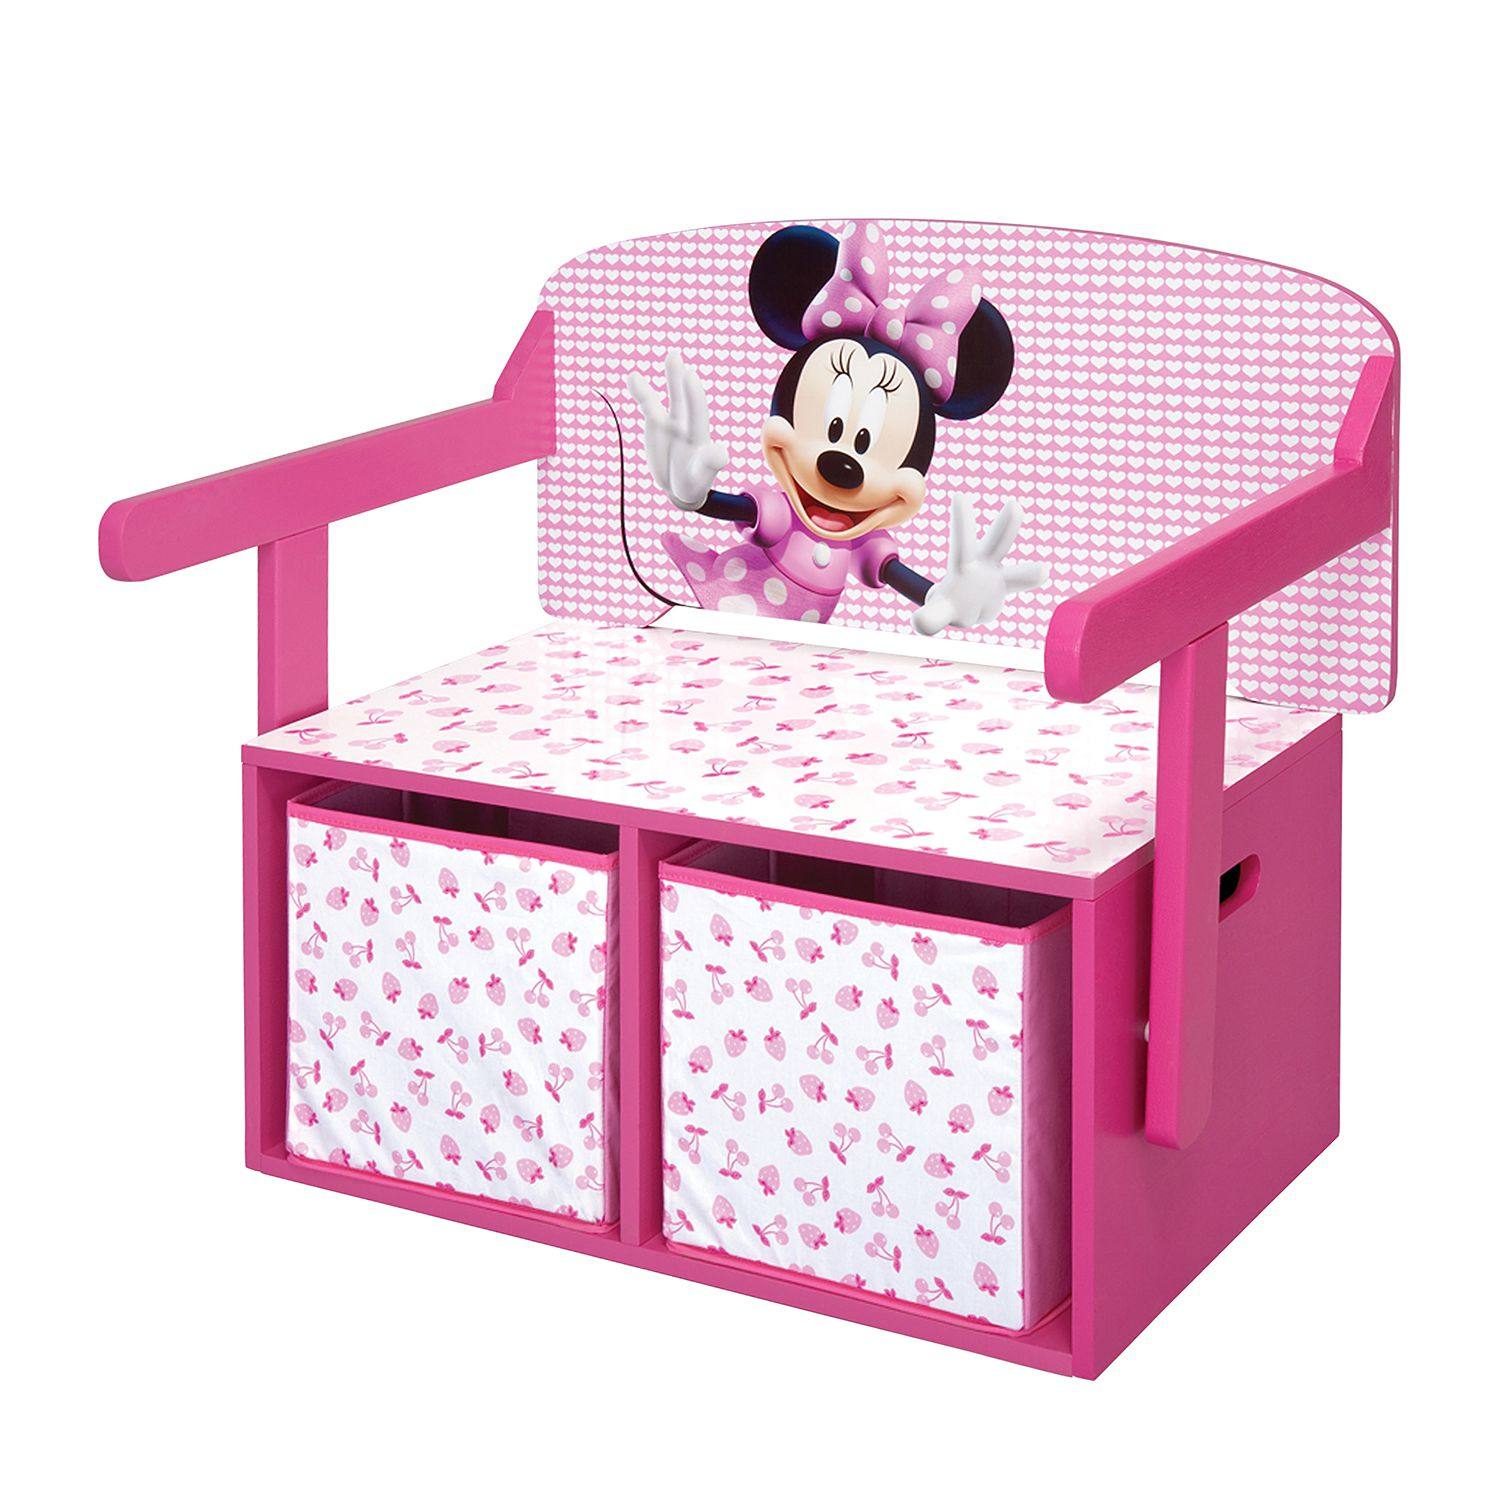 rabatt kinderzimmer wohnen sitzm bel kinderb nke. Black Bedroom Furniture Sets. Home Design Ideas